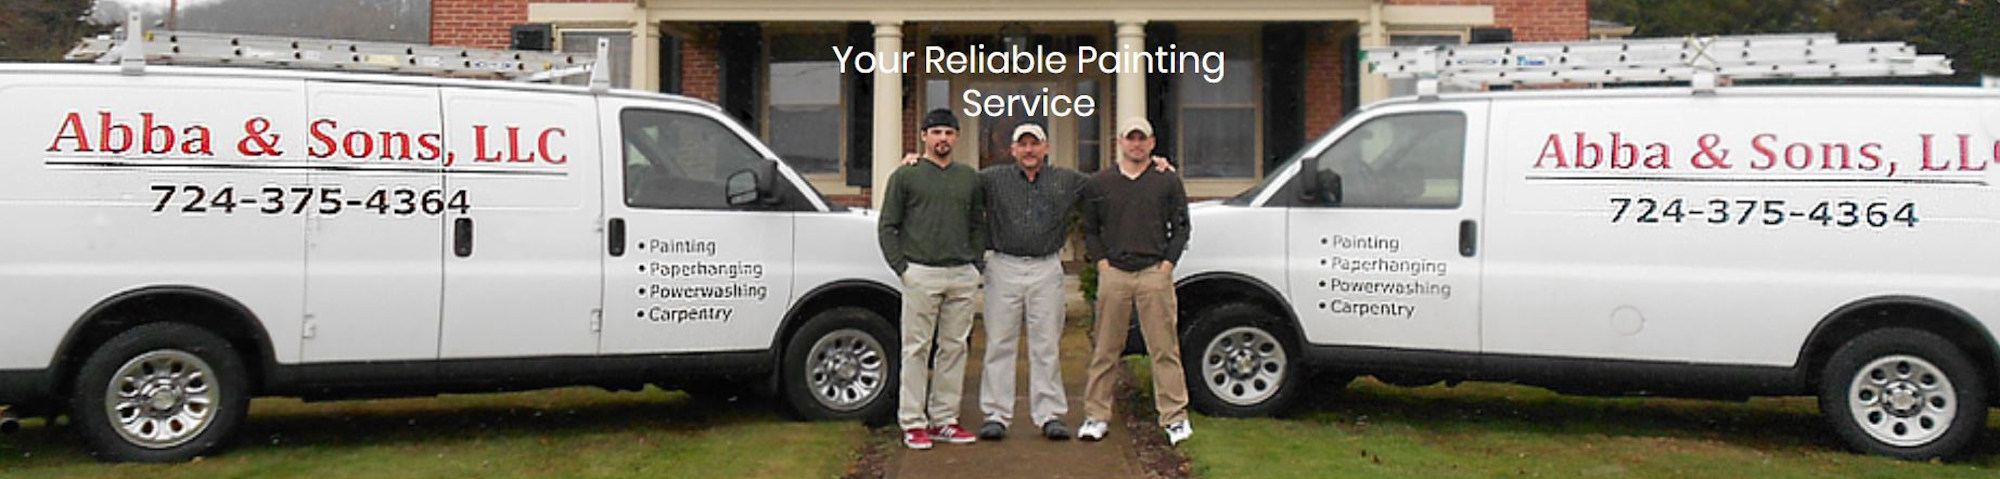 Abba & Sons, LLC Your Reliable Painting Service